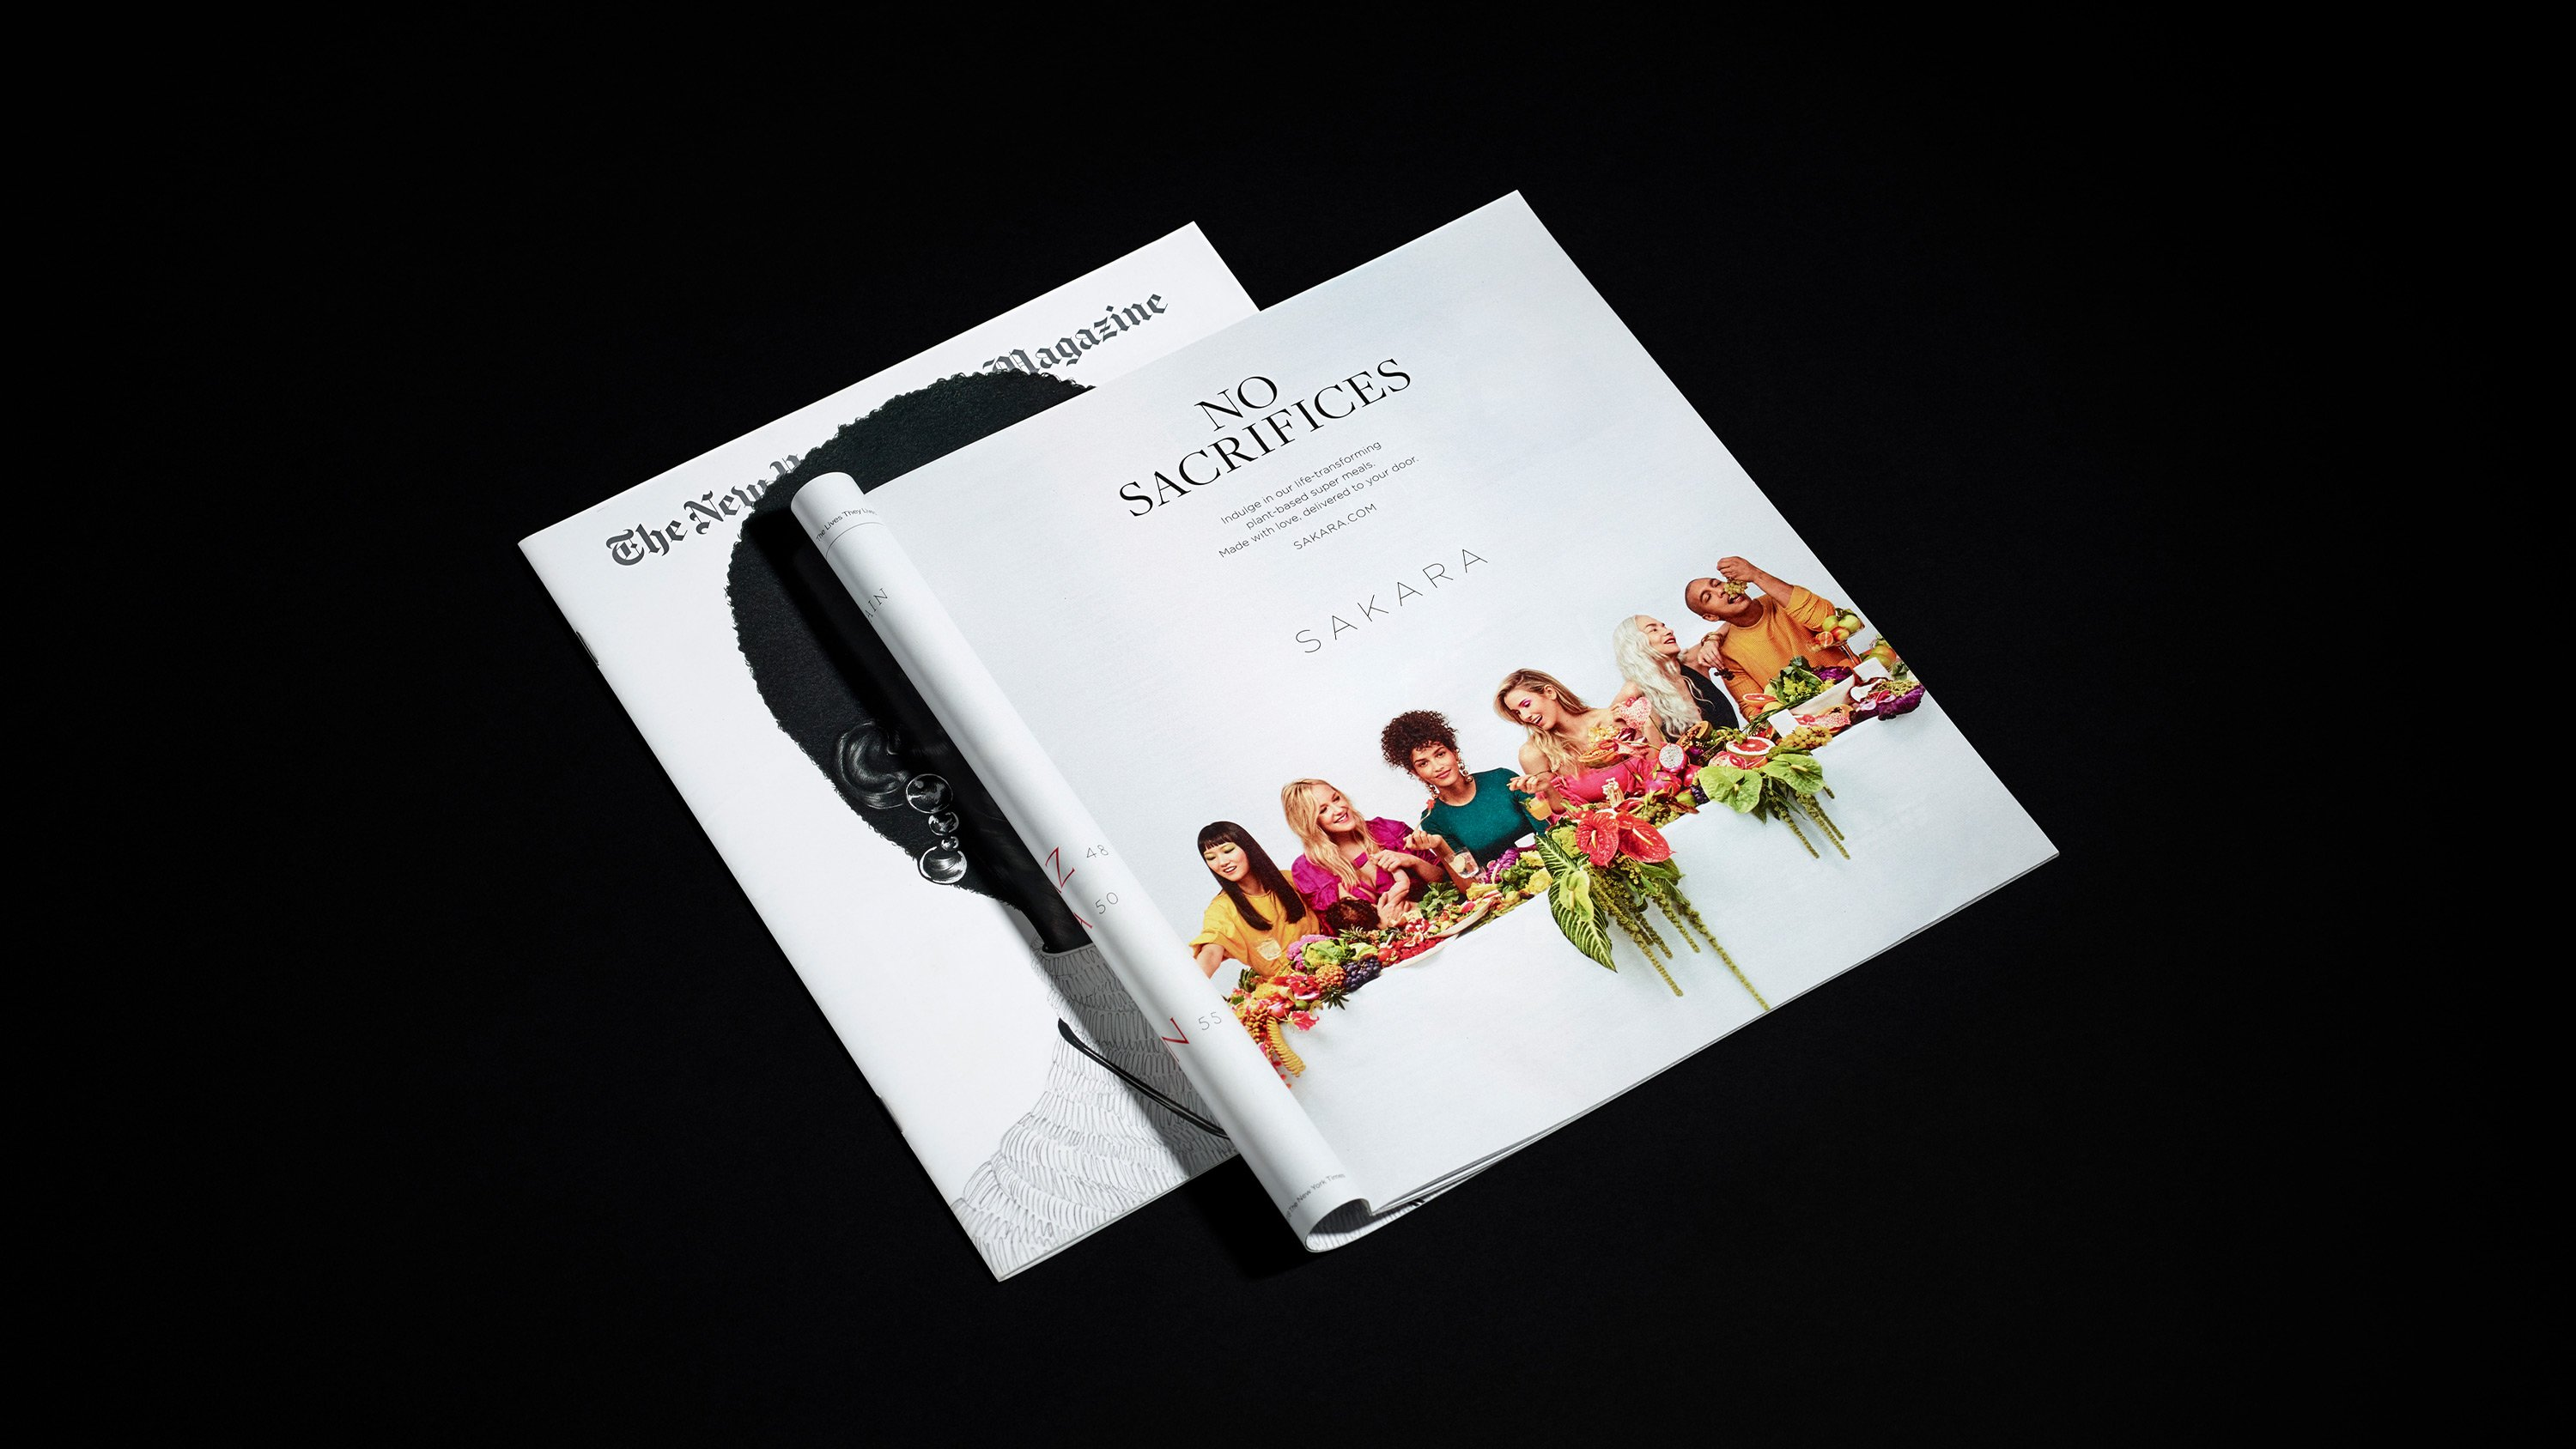 Sakara No sacrifices full-page ad in New York Times Magazine. Campaign Art direction by RoAndCo